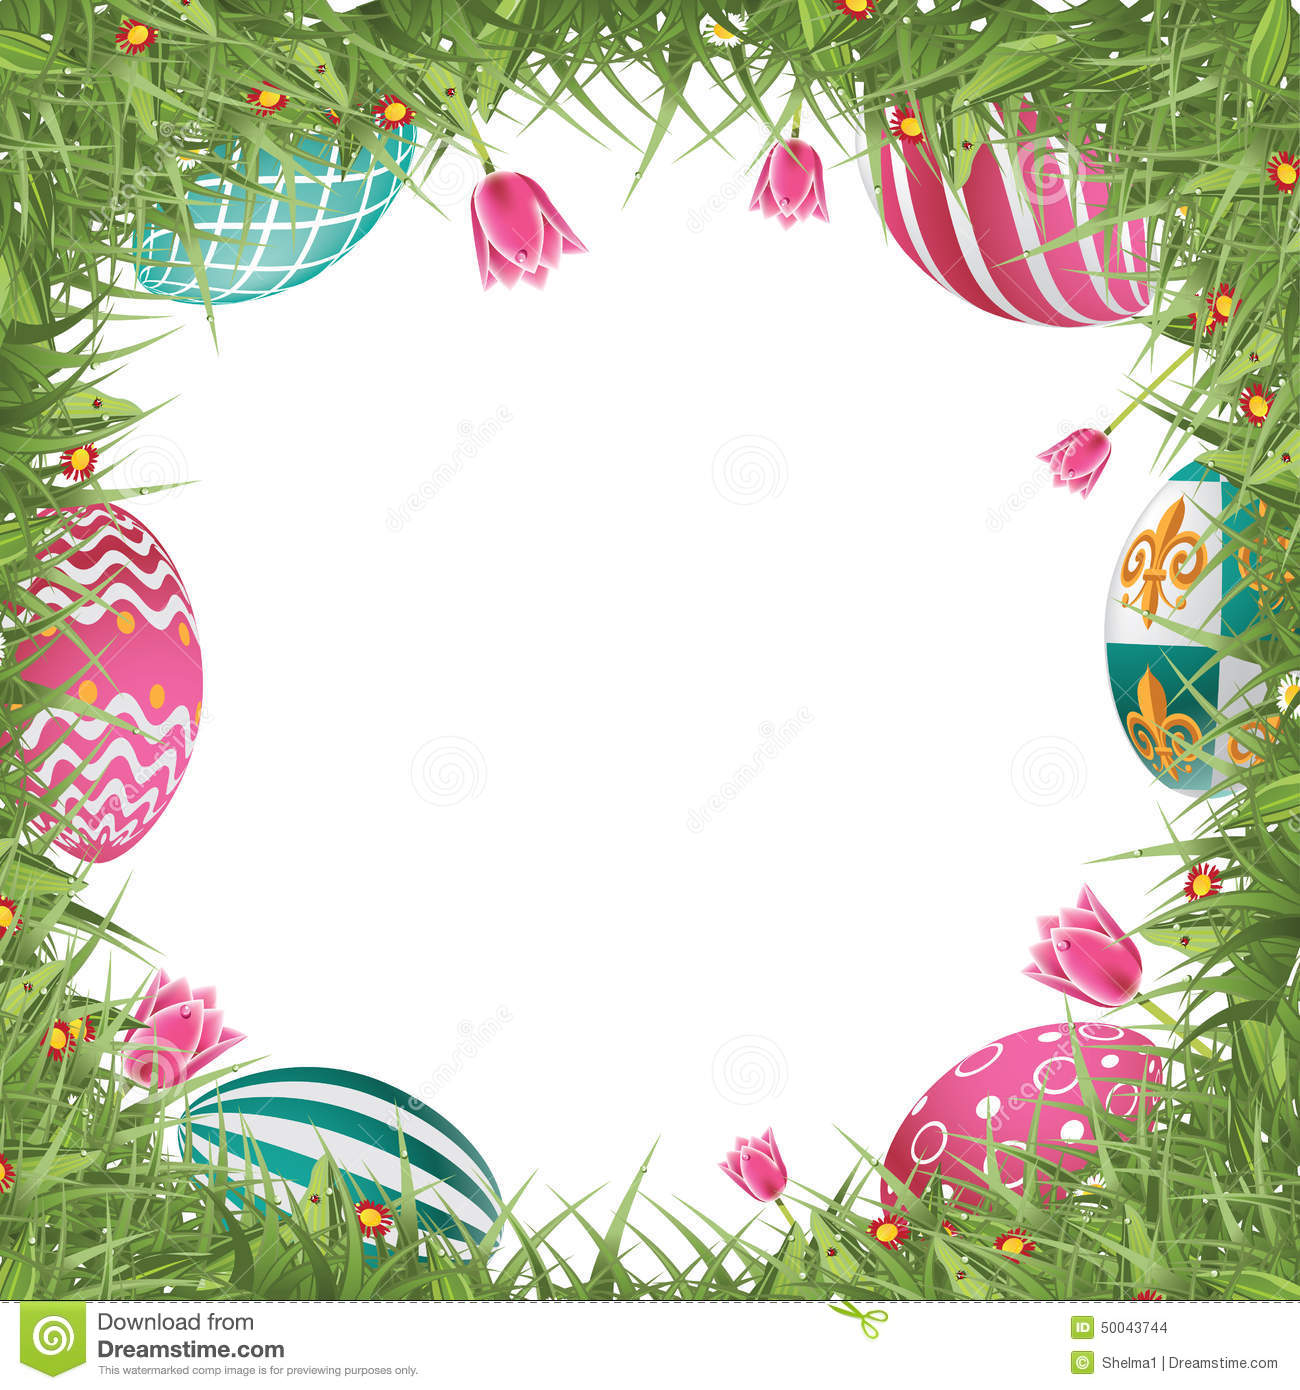 Happy easter egg hunt frame with grass and tulips stock illustration happy easter egg hunt frame with grass and tulips maxwellsz